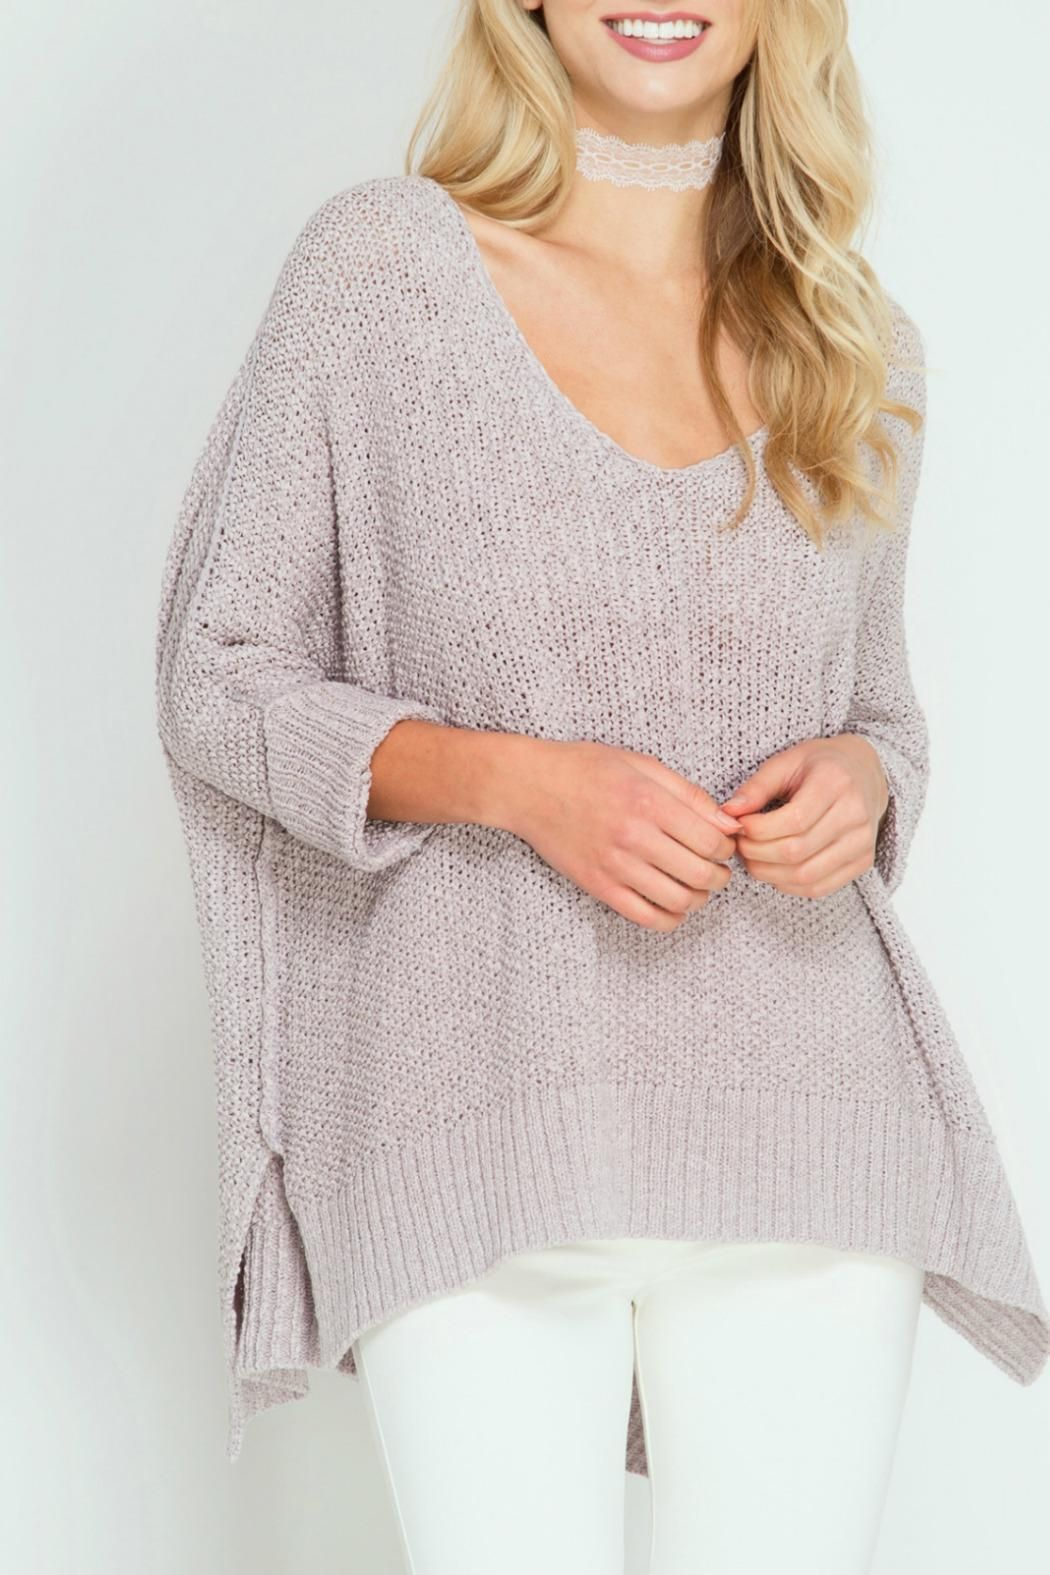 She Sky High Low Sweater Boutique Highlights Sweaters Sleeves